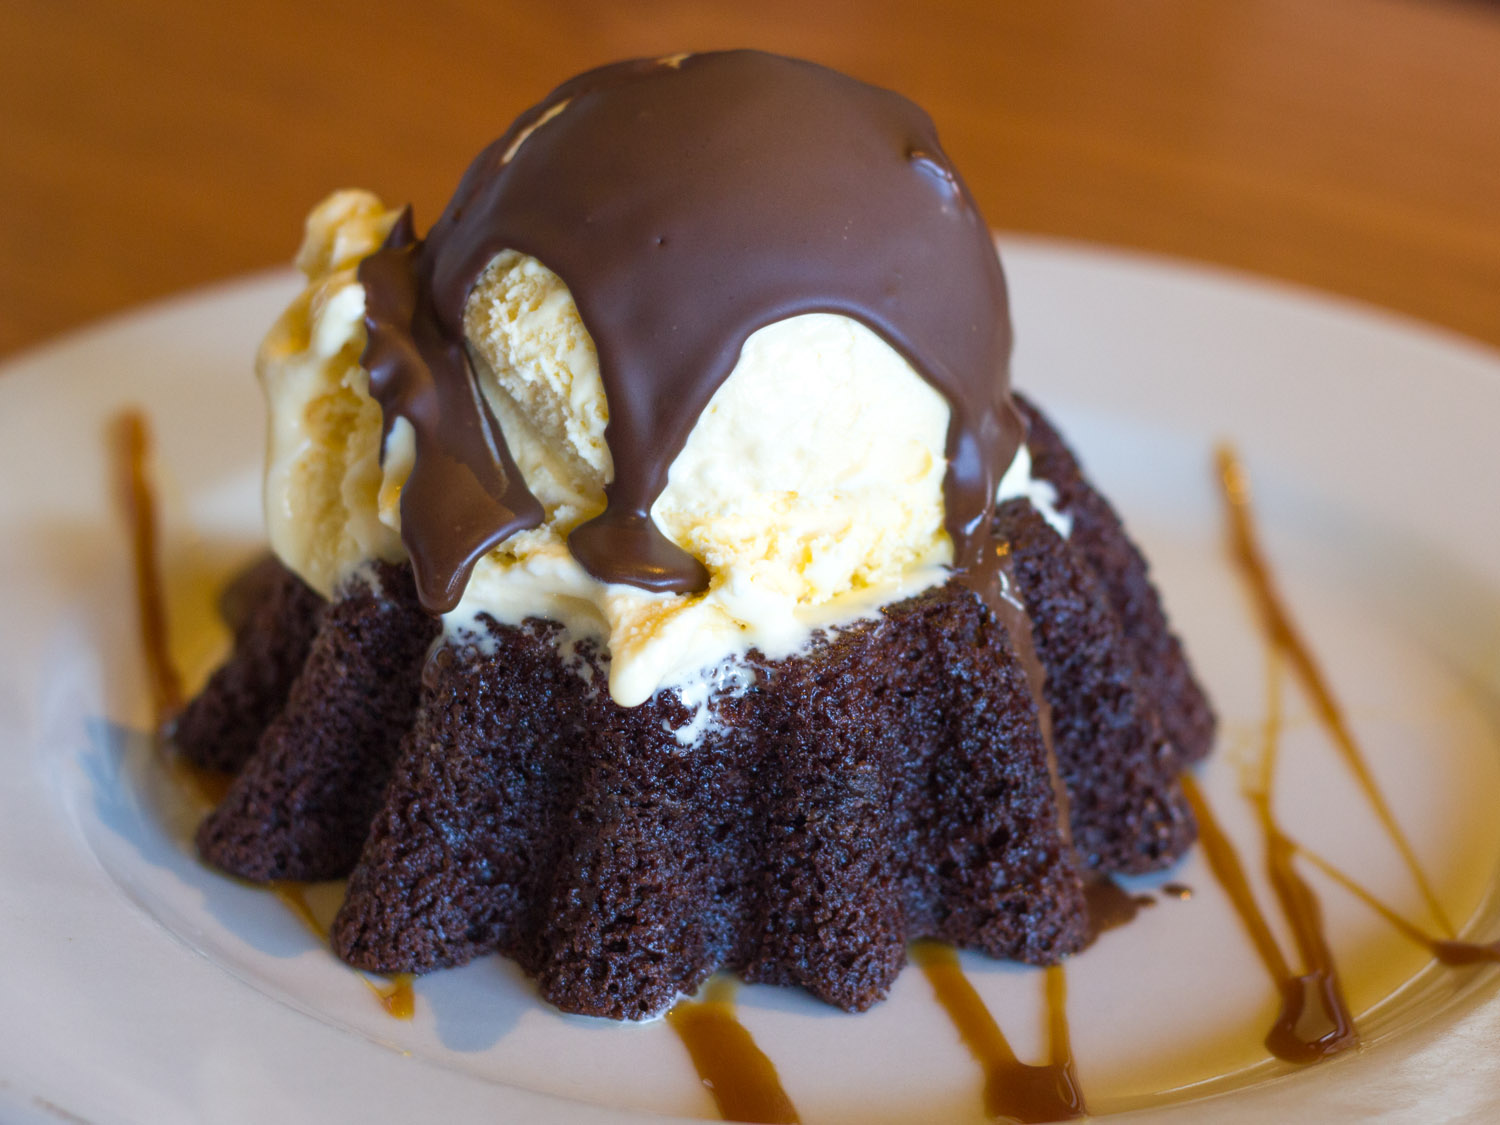 Chili's chocolate lava cake